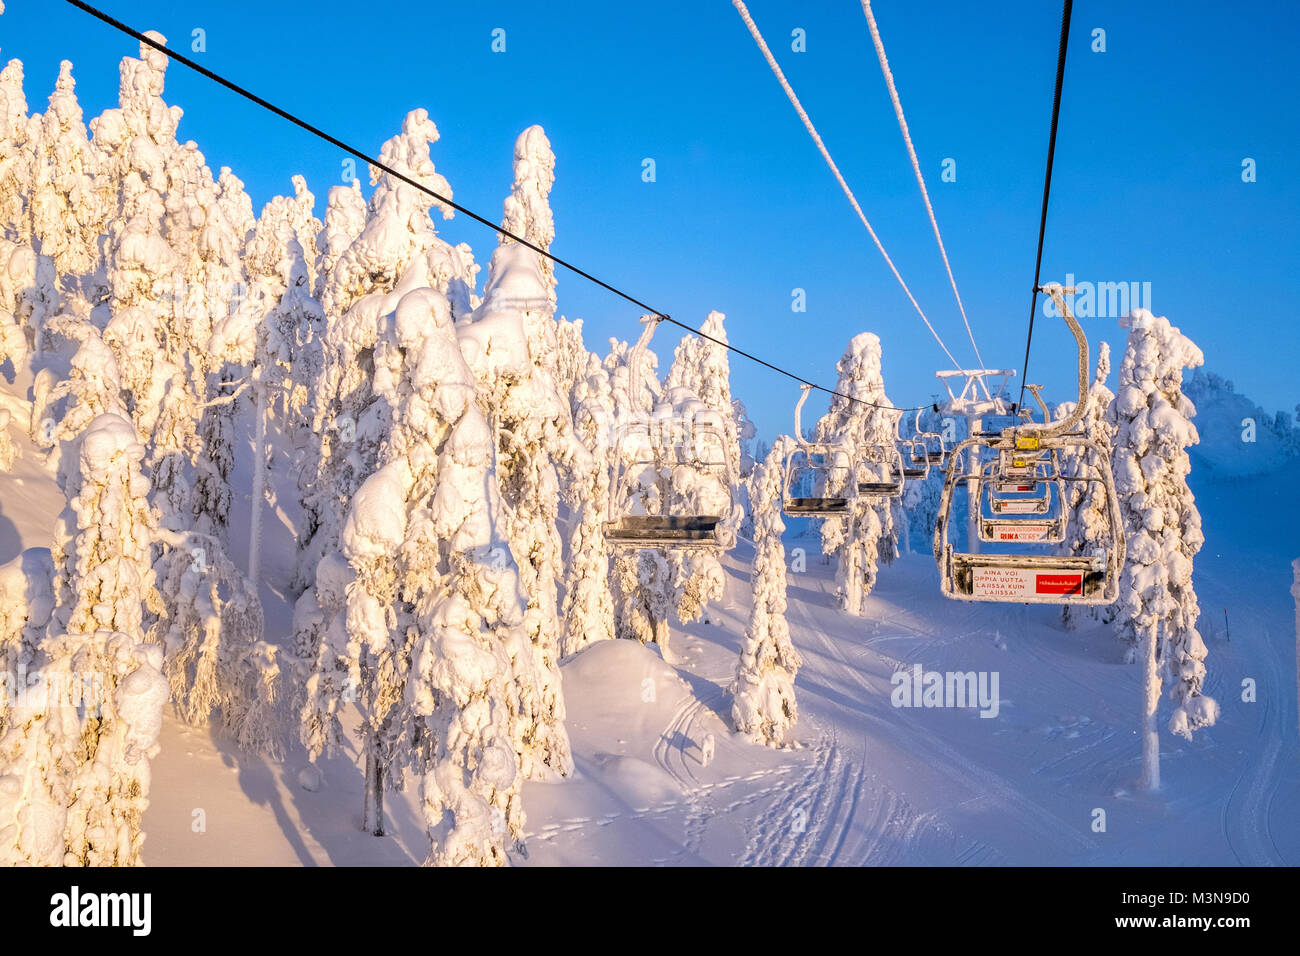 Chairlift at The ski resort of Ruka in Finland - Stock Image